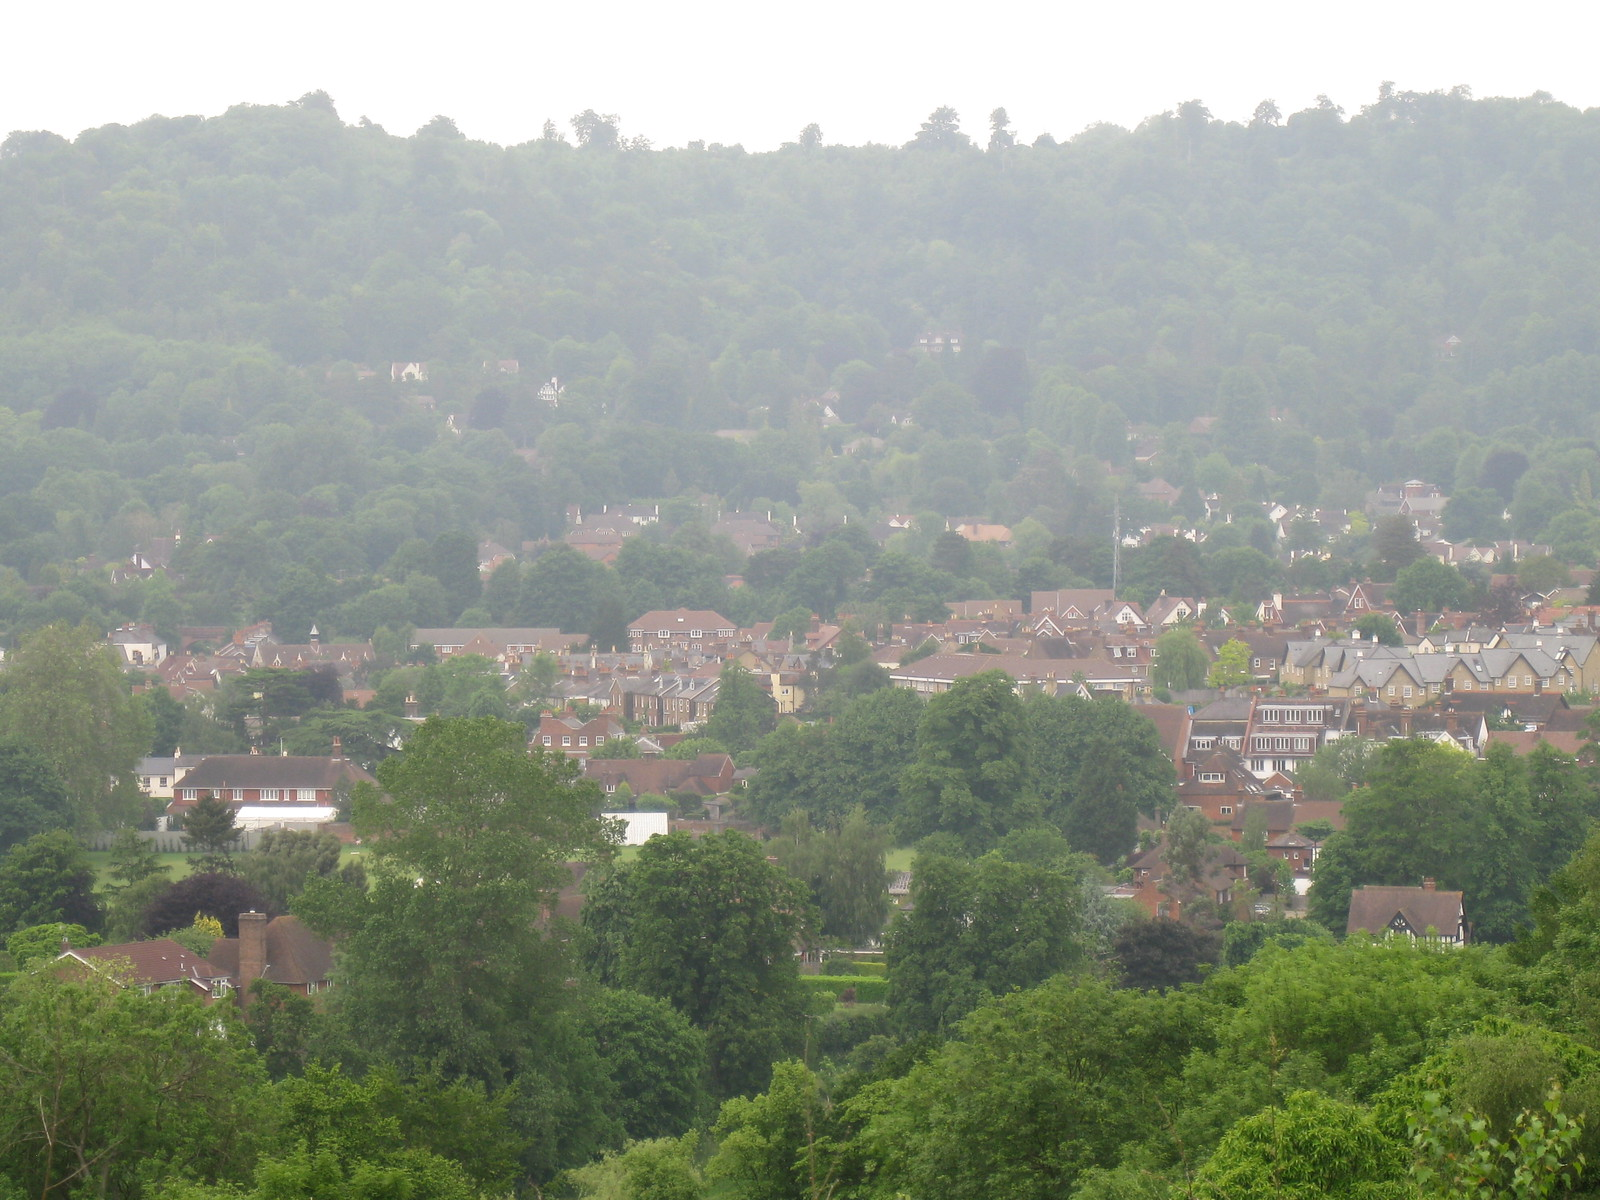 View towards Reigate